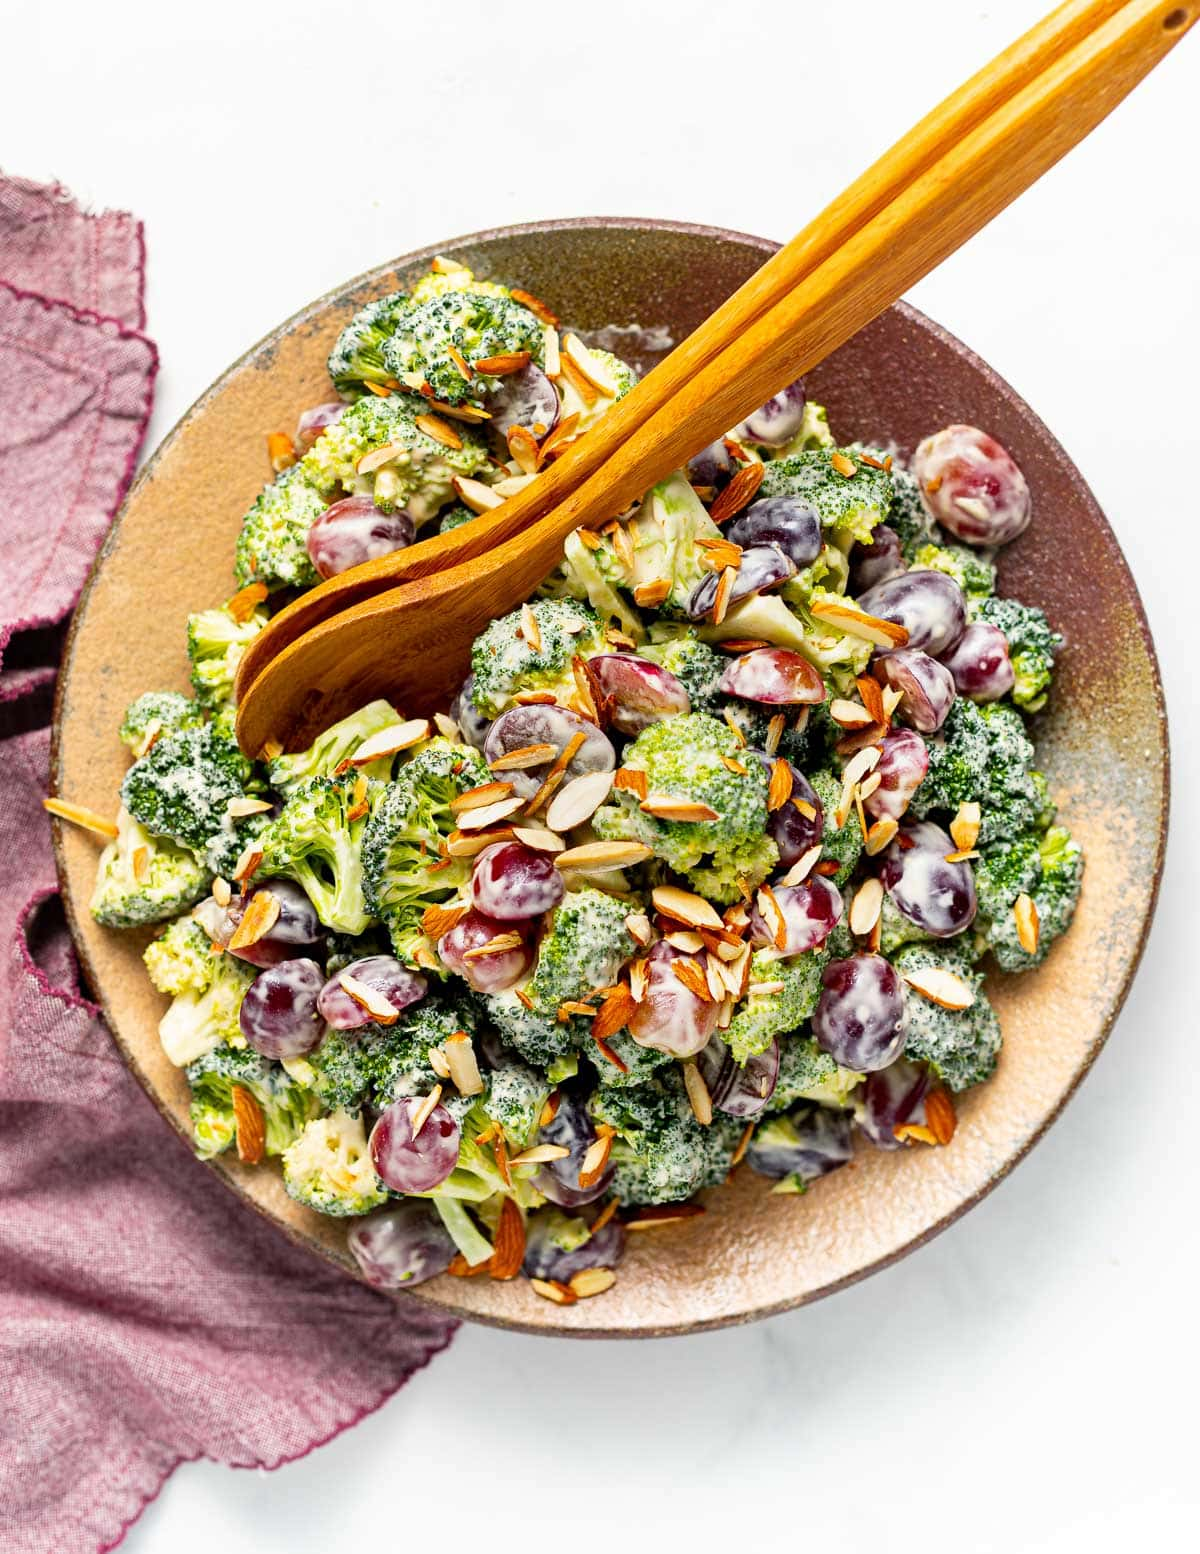 a plate of vegan broccoli salad with wooden salad servers resting across it